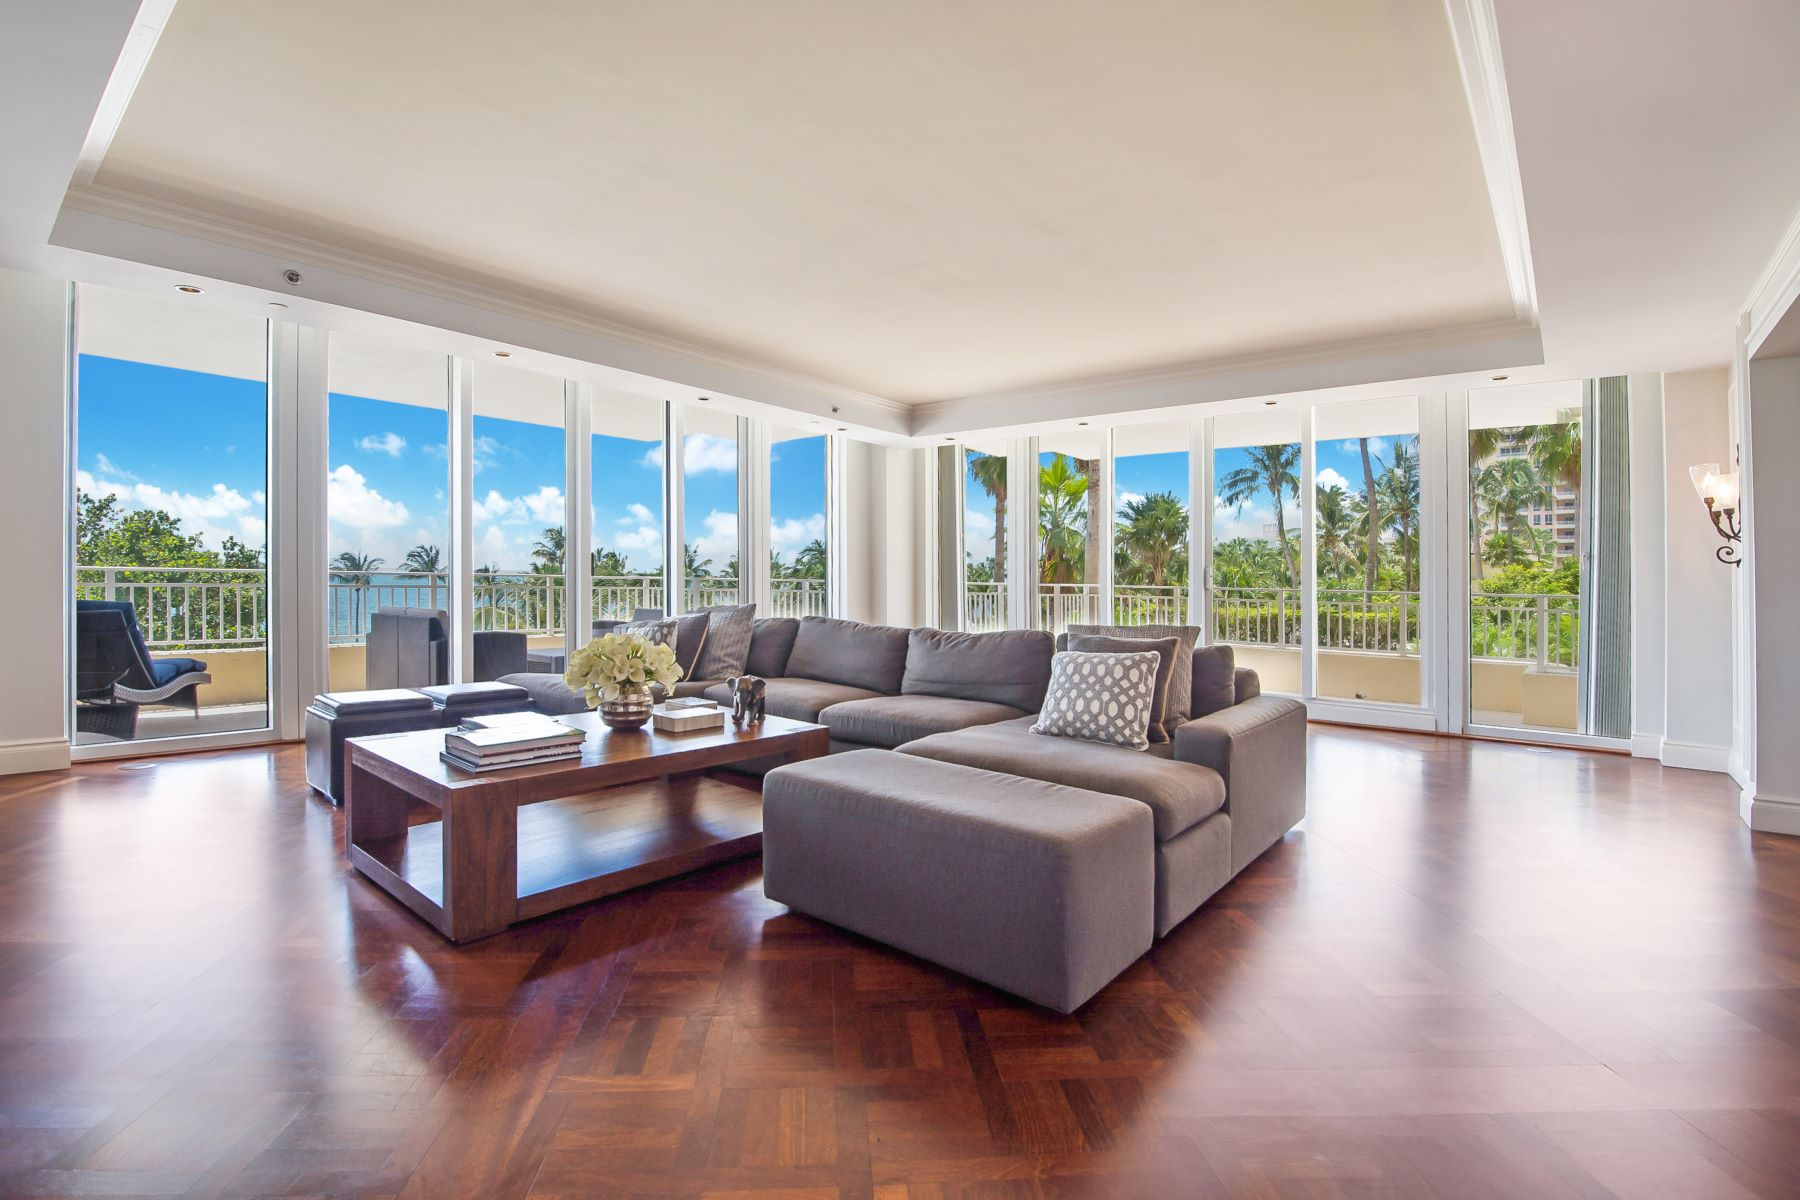 Condominiums for Sale at 791 Crandon Blvd 308, Key Biscayne, Florida 33149 United States